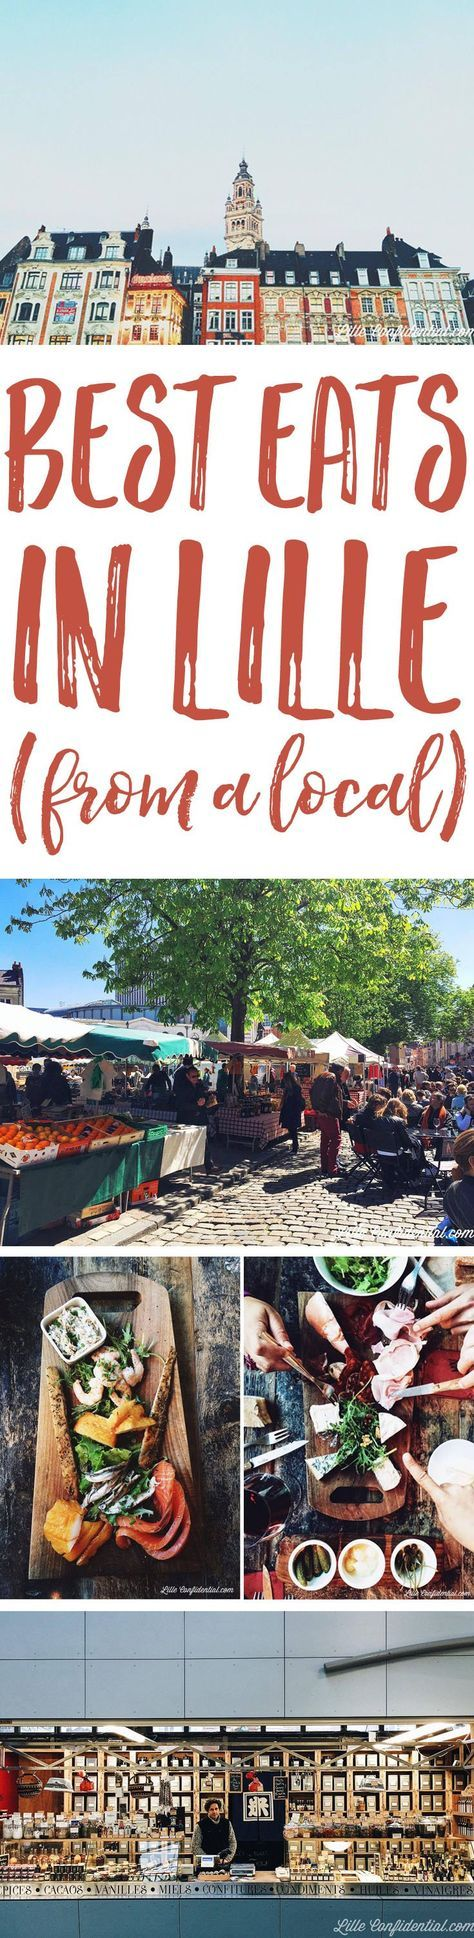 Planning a trip to Lille? Don't miss this selection of the best eats in Lille to wine, dine, and shop like a local Lilloise!